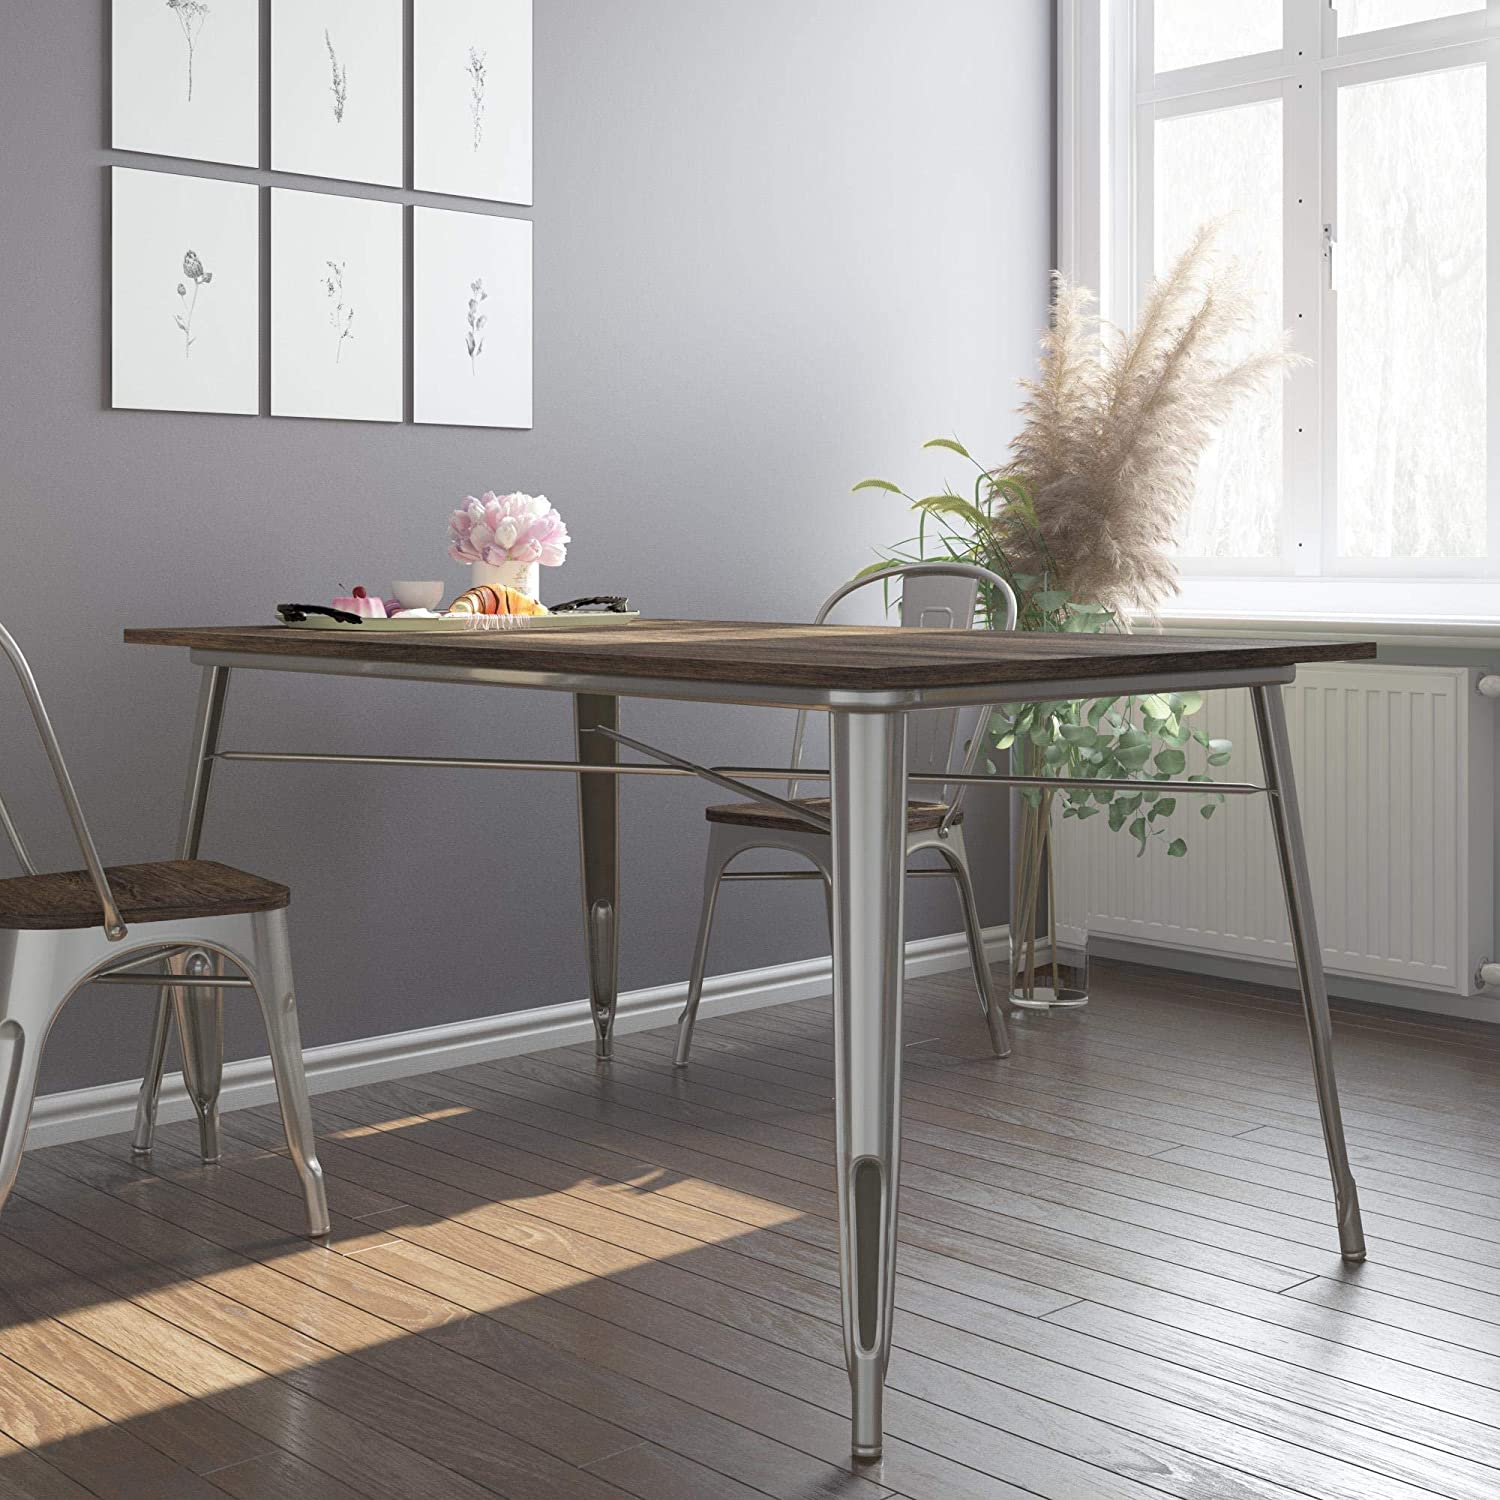 DHP Fusion Metal Rectangular Dining Table with Wood Table Top, Distressed Metal Finish for Industrial Appeal, Antique Gun Metal